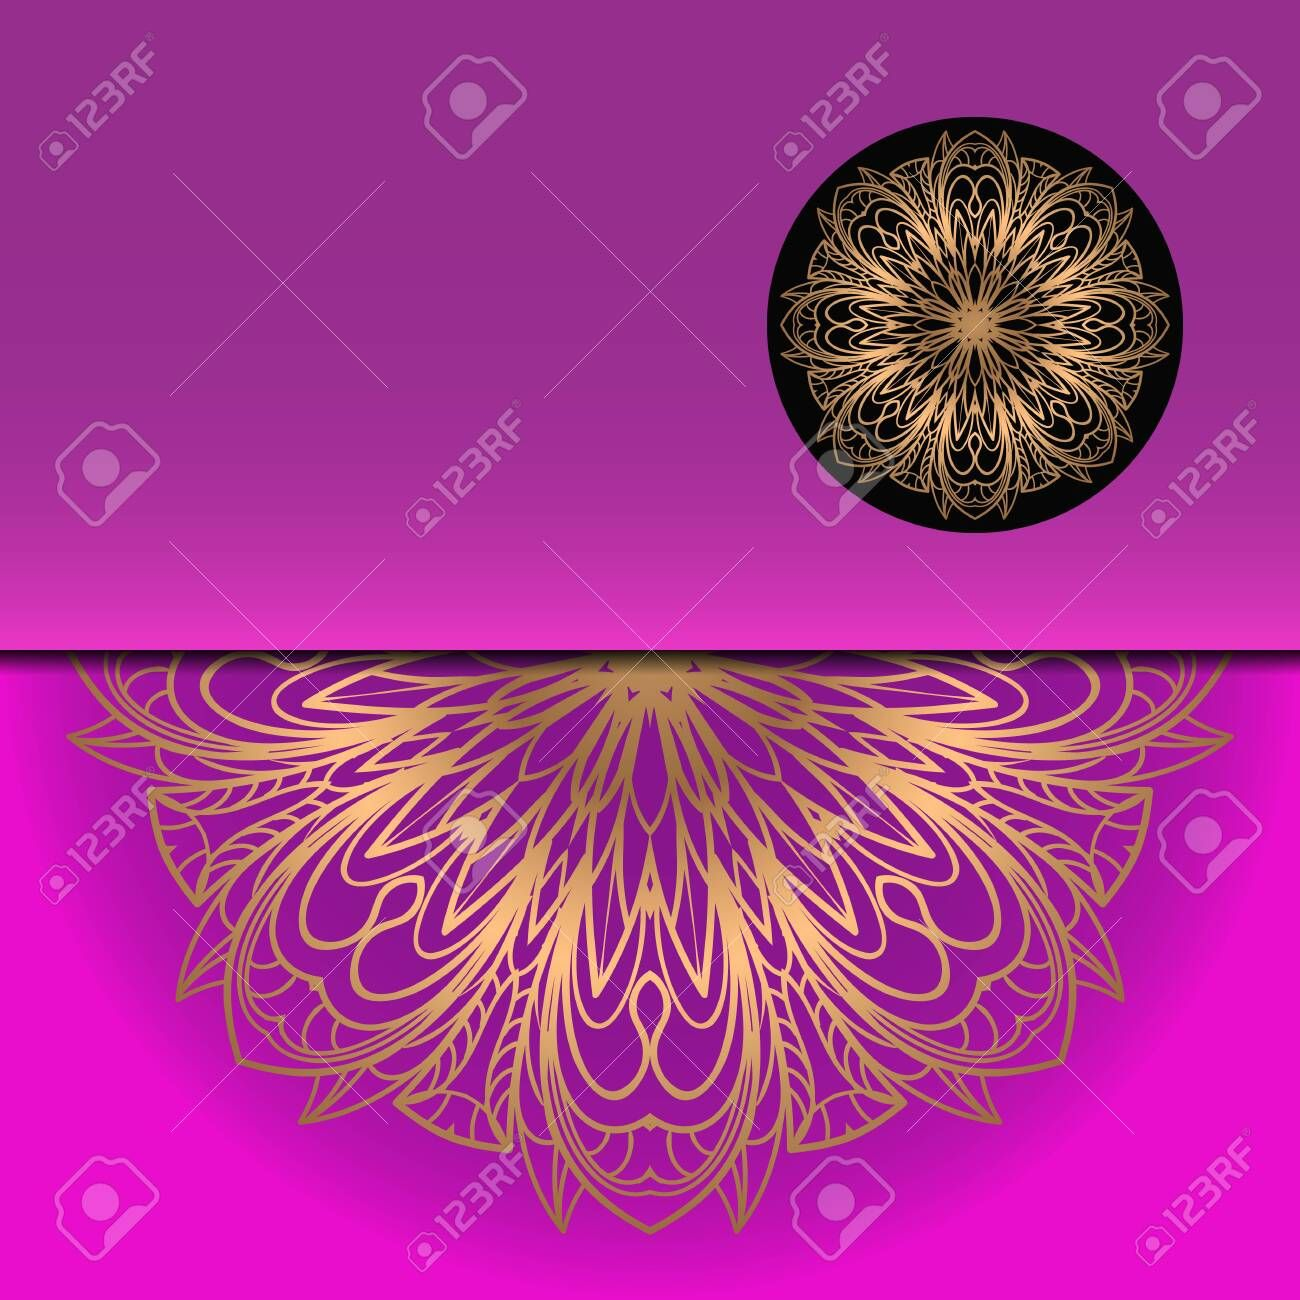 Abstract Luxury Background Vector Illustration Ornament Elegant Invitation Wedding Card Invite With Images Elegant Invitations Luxury Background Wedding Background